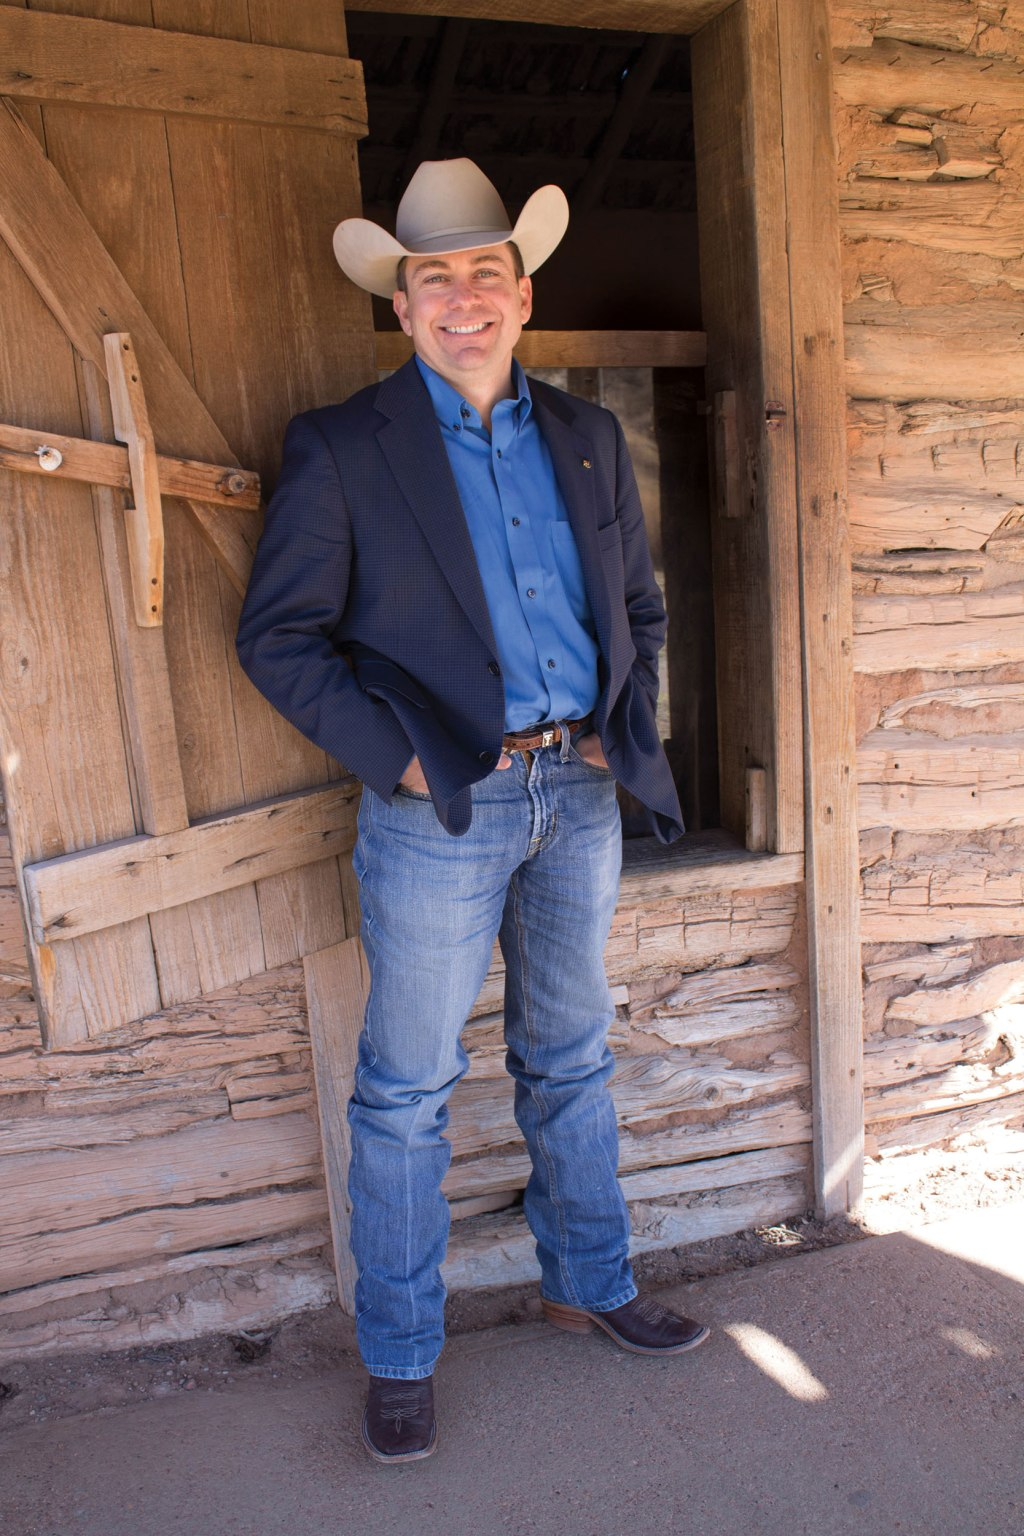 New Executive Director of the NRHC, Jim Bret Campbell, excited to return to Texas Tech.